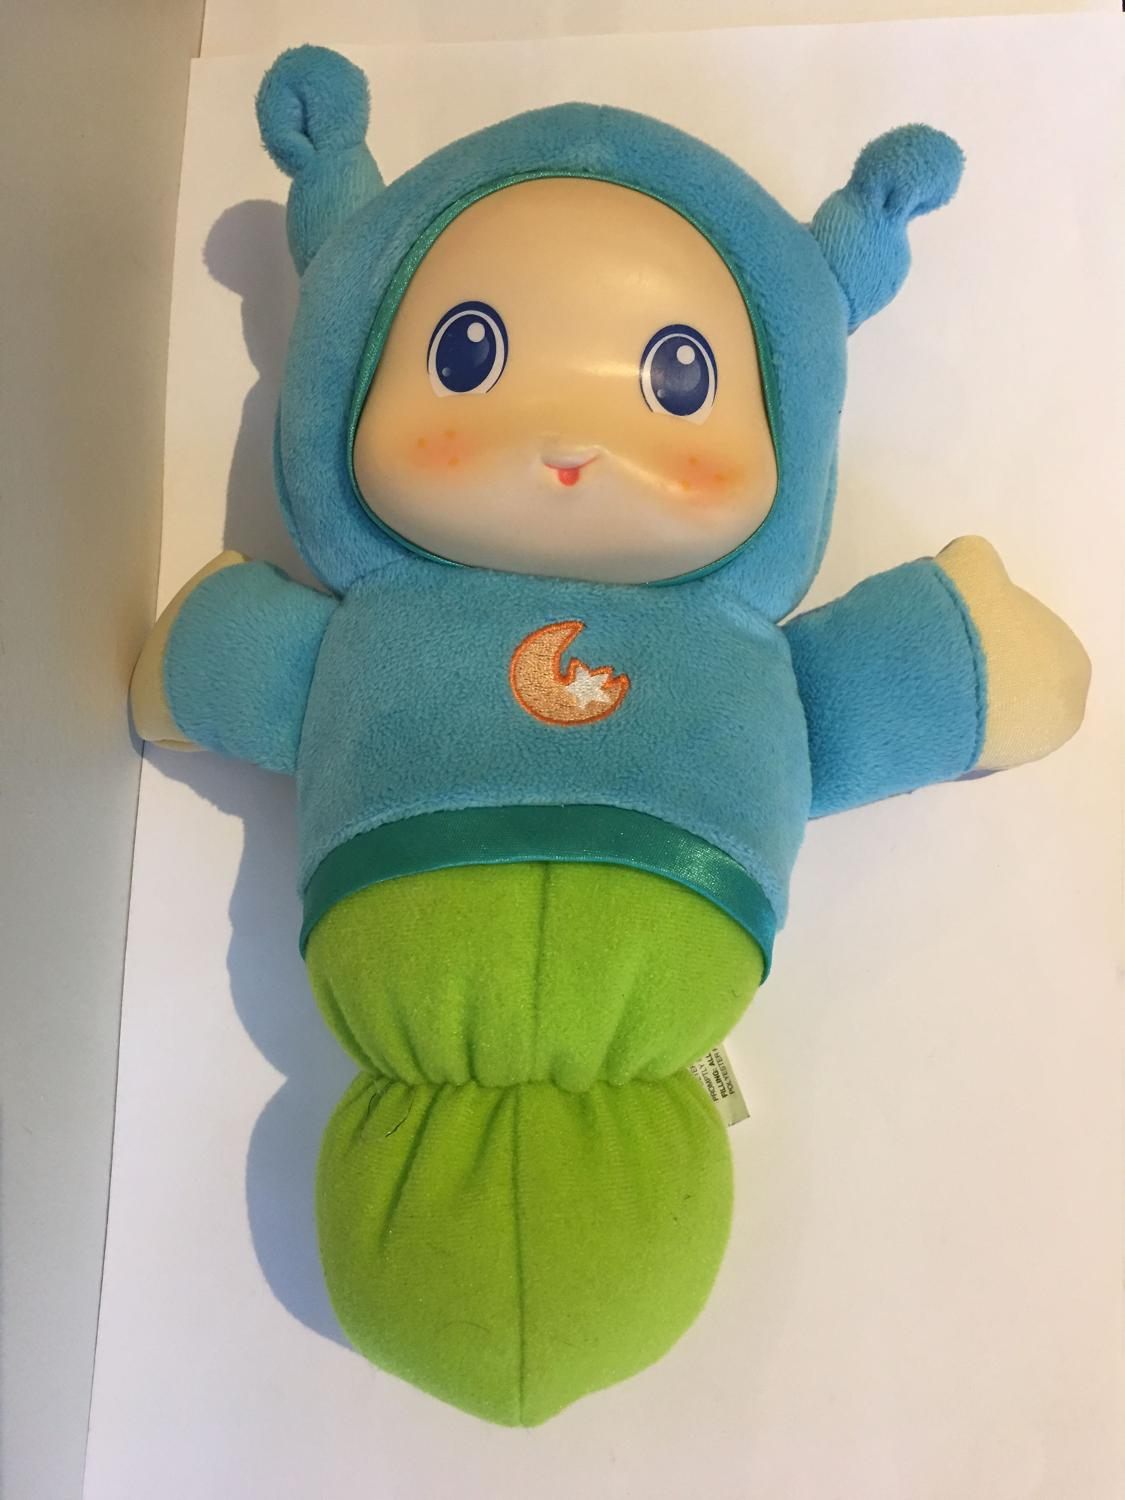 Find more Playskool Favorite Lullaby Glow Worm for sale at up to 90% off